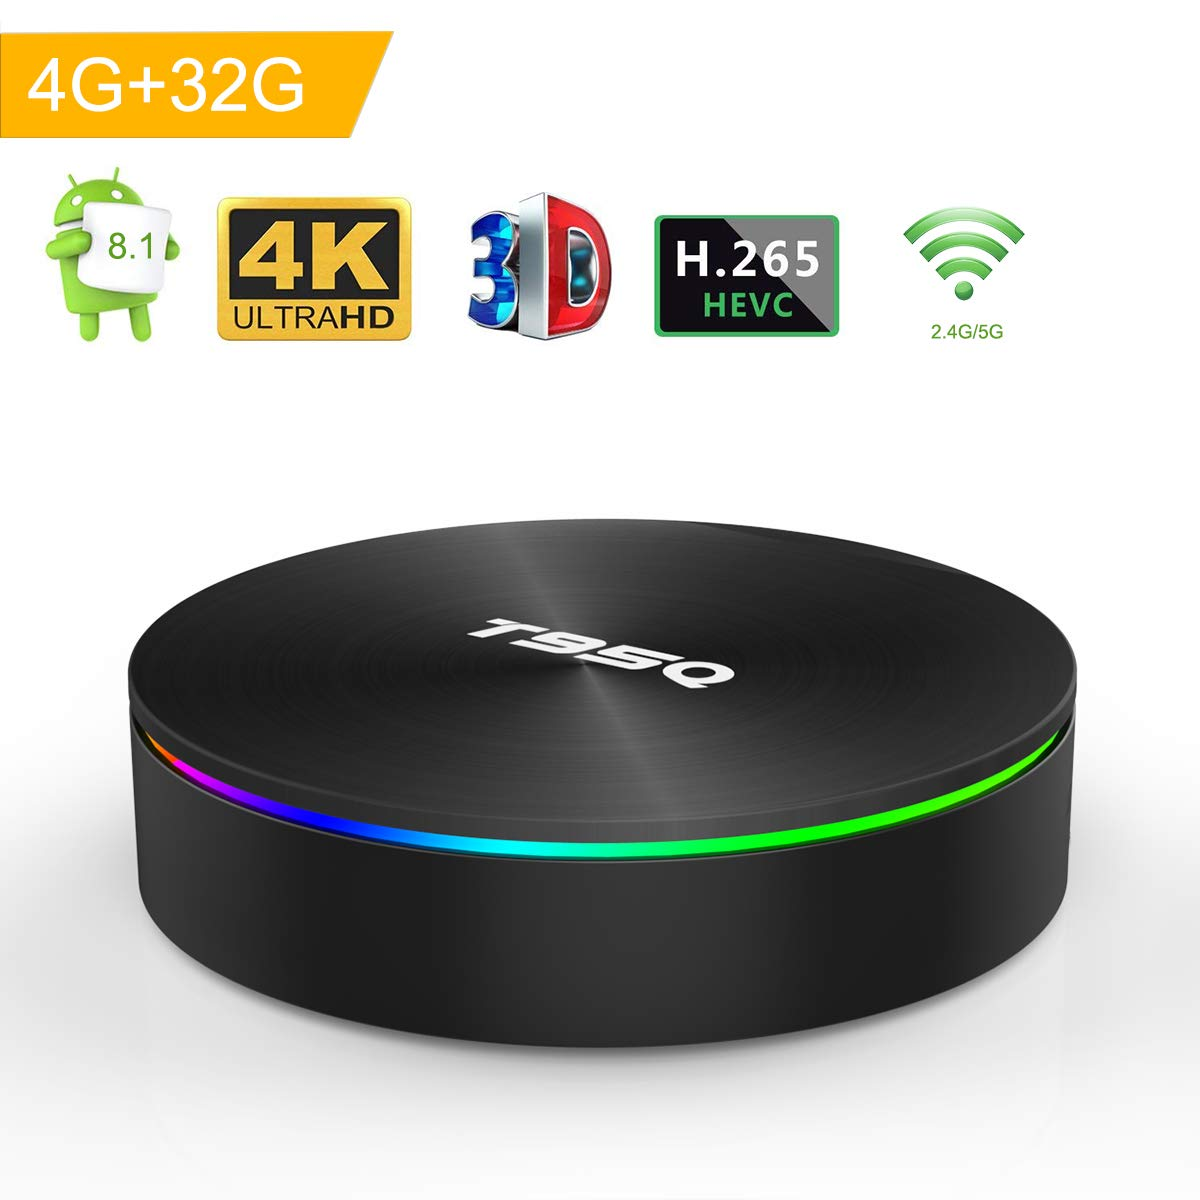 Android 8.1 TV Box, Android Box 4GB RAM 32GB ROM S905X2 Quad-Core Cortex-A53 Support 2.4G/5G WiFi/H.265 Decoding/4K Full HD Output/ HDMI2.0/ 100M Ethernet/ Bluetooth 4.1 Smart TV Box Turewell T95Q